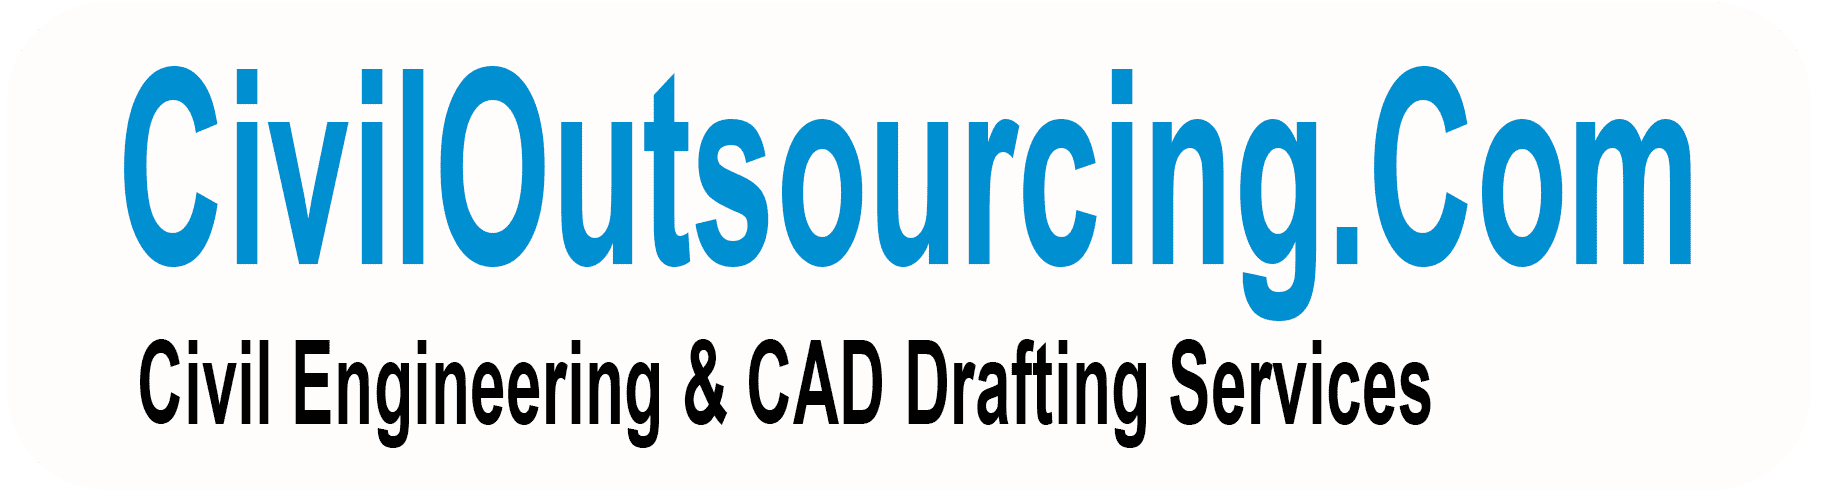 Civil Engineering & CAD Drafting Services